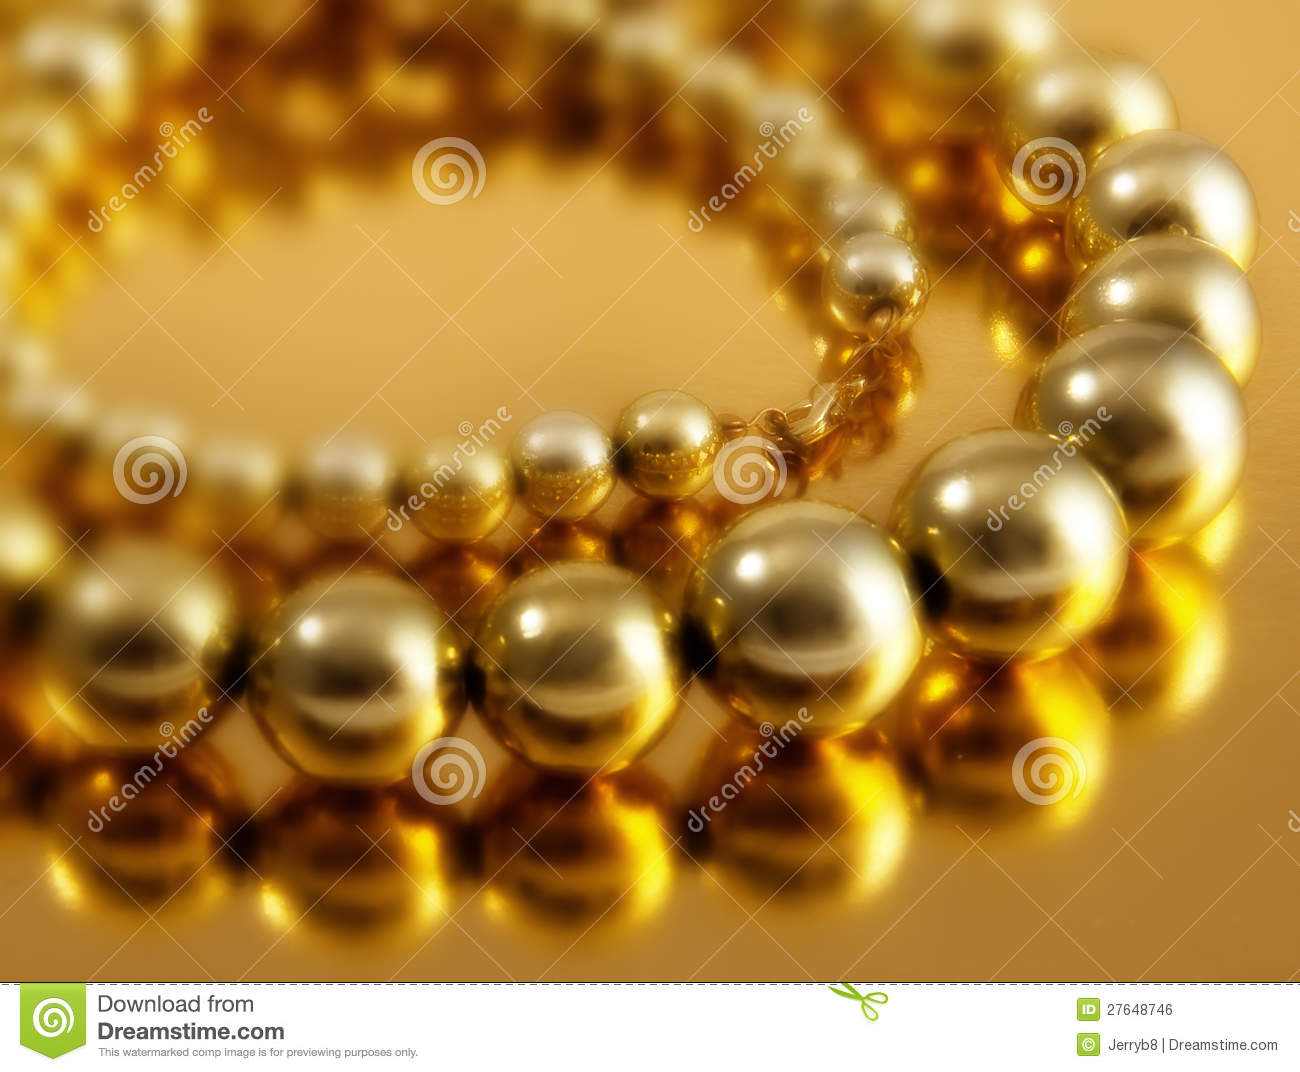 large bead necklace royalty free stock image image 27648746